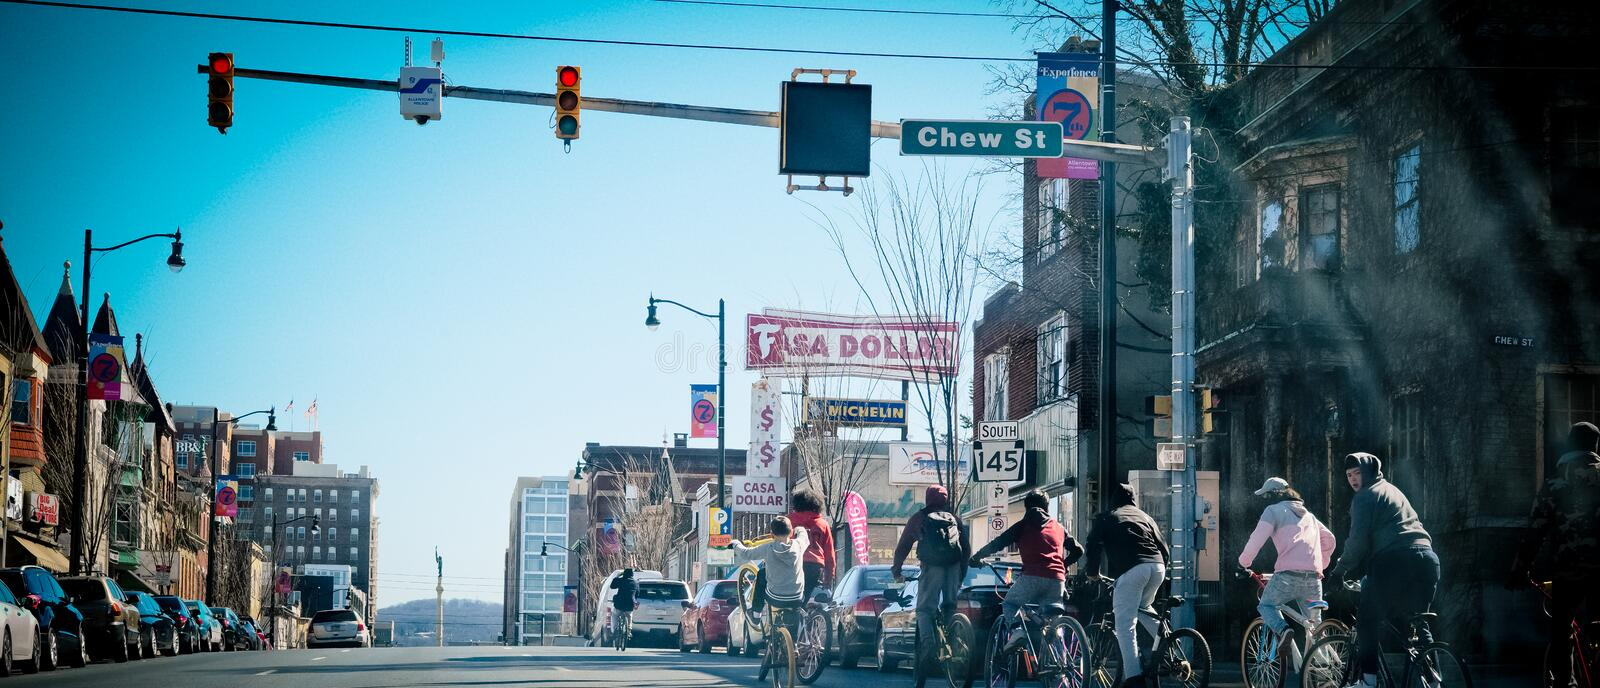 Allentown downtown street. Allentown, Pennsylvania, United States, March 18 2018: Allentown downtown street royalty free stock image